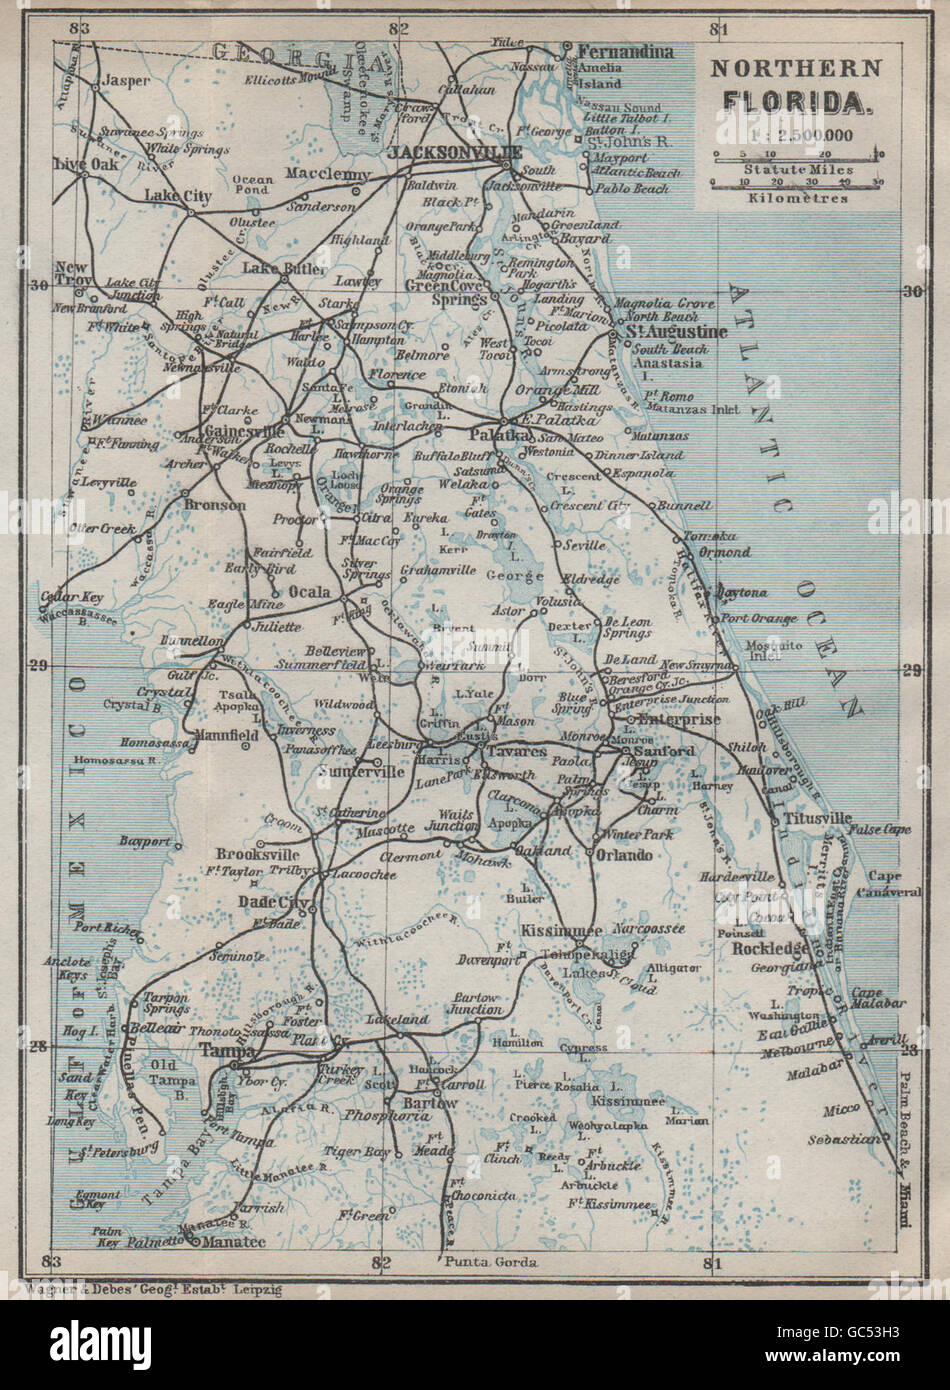 NORTHERN FLORIDA Jacksonville St Augustine Tampa BAEDEKER - Map of northern florida